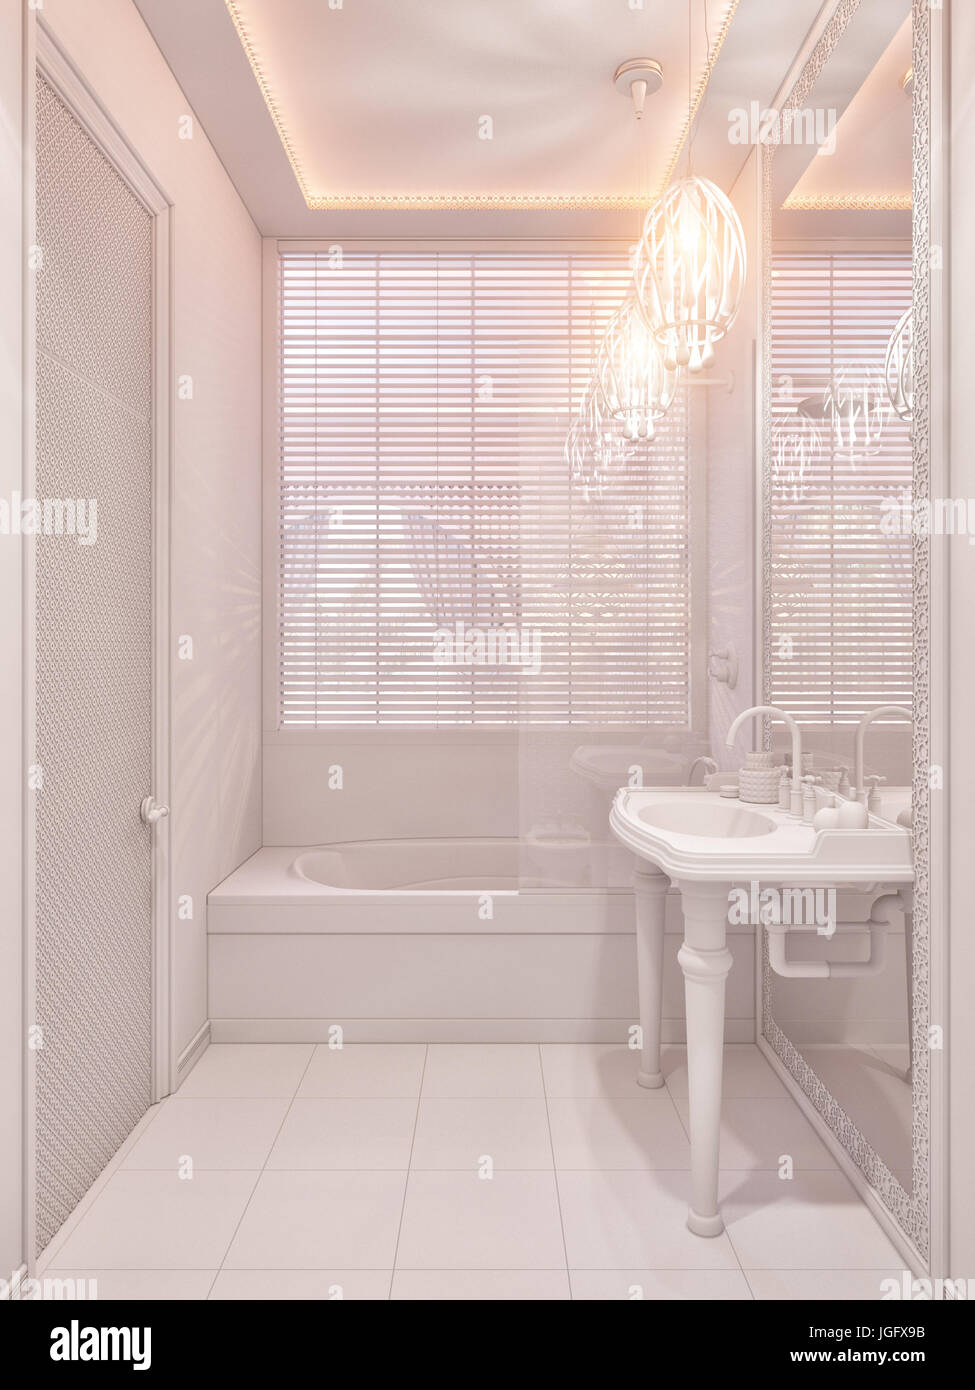 3d Illustration Bathroom Interior Design Of A Hotel Room In Traditional Islamic Style Beautiful Deluxe Background View Decorated With